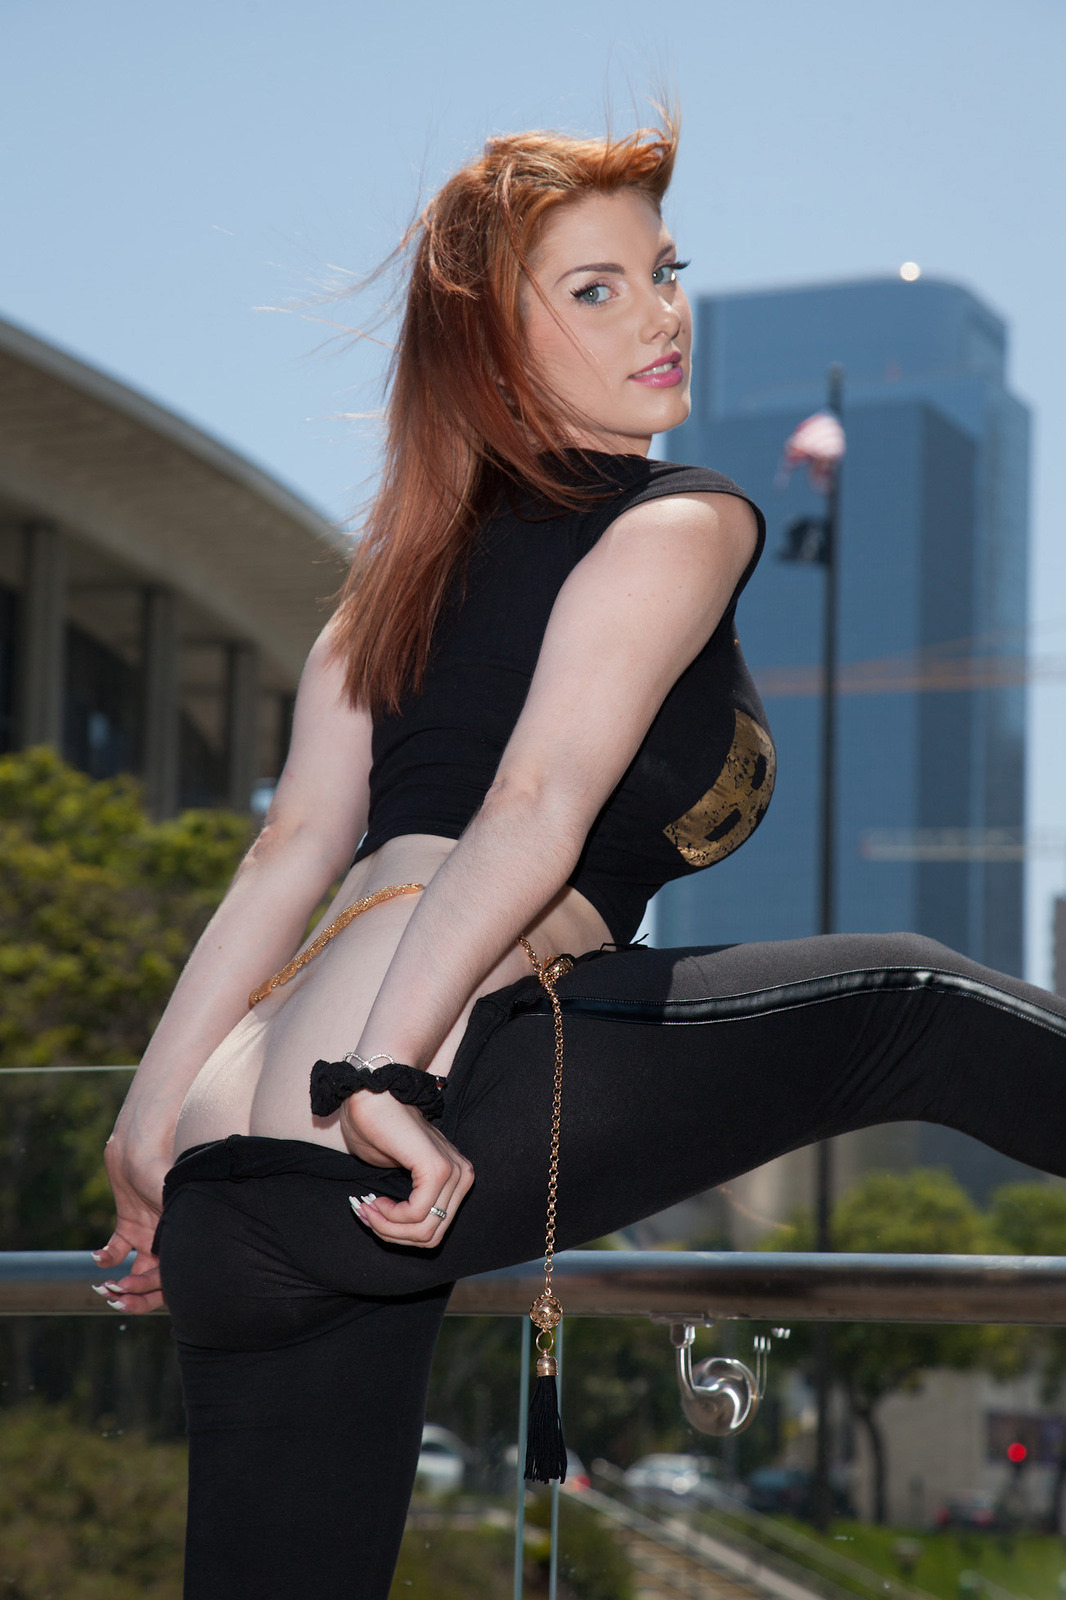 Lilith Lust aka Rainia Belle Imperdible